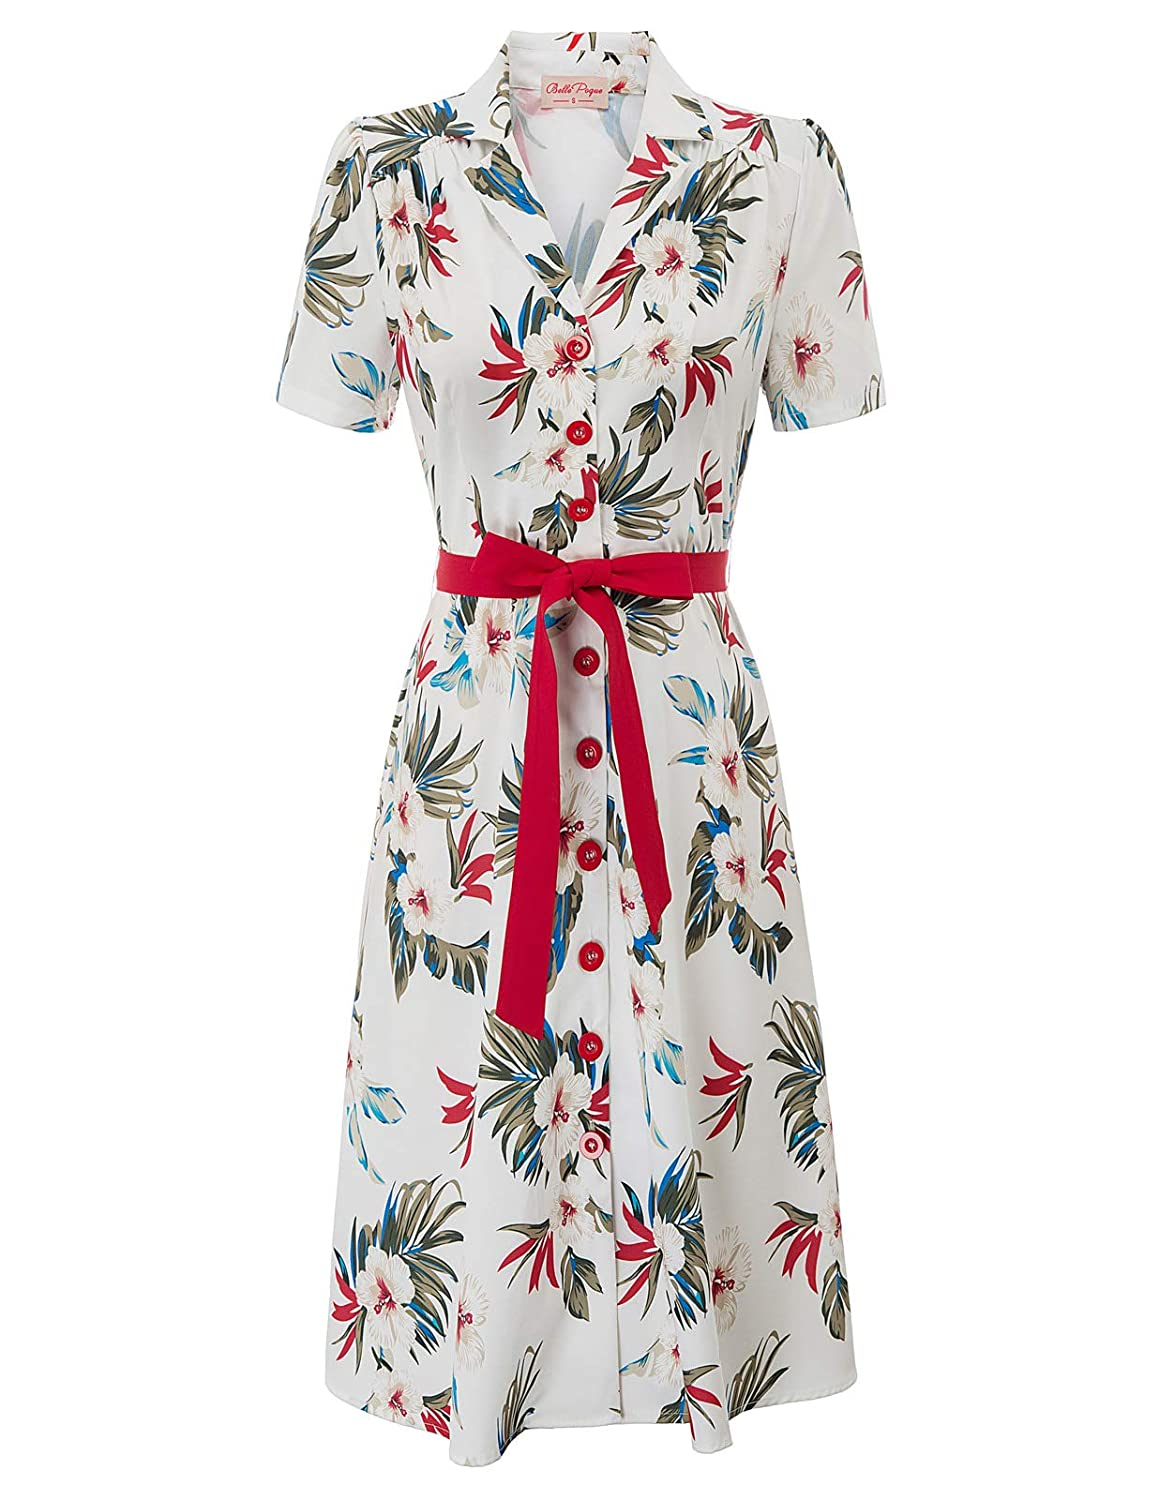 Swing Dance Clothing You Can Dance In Belle Poque Women Vintage Floral Print Midi Dress 1950s Tea Dress with Belt BP878 $27.99 AT vintagedancer.com